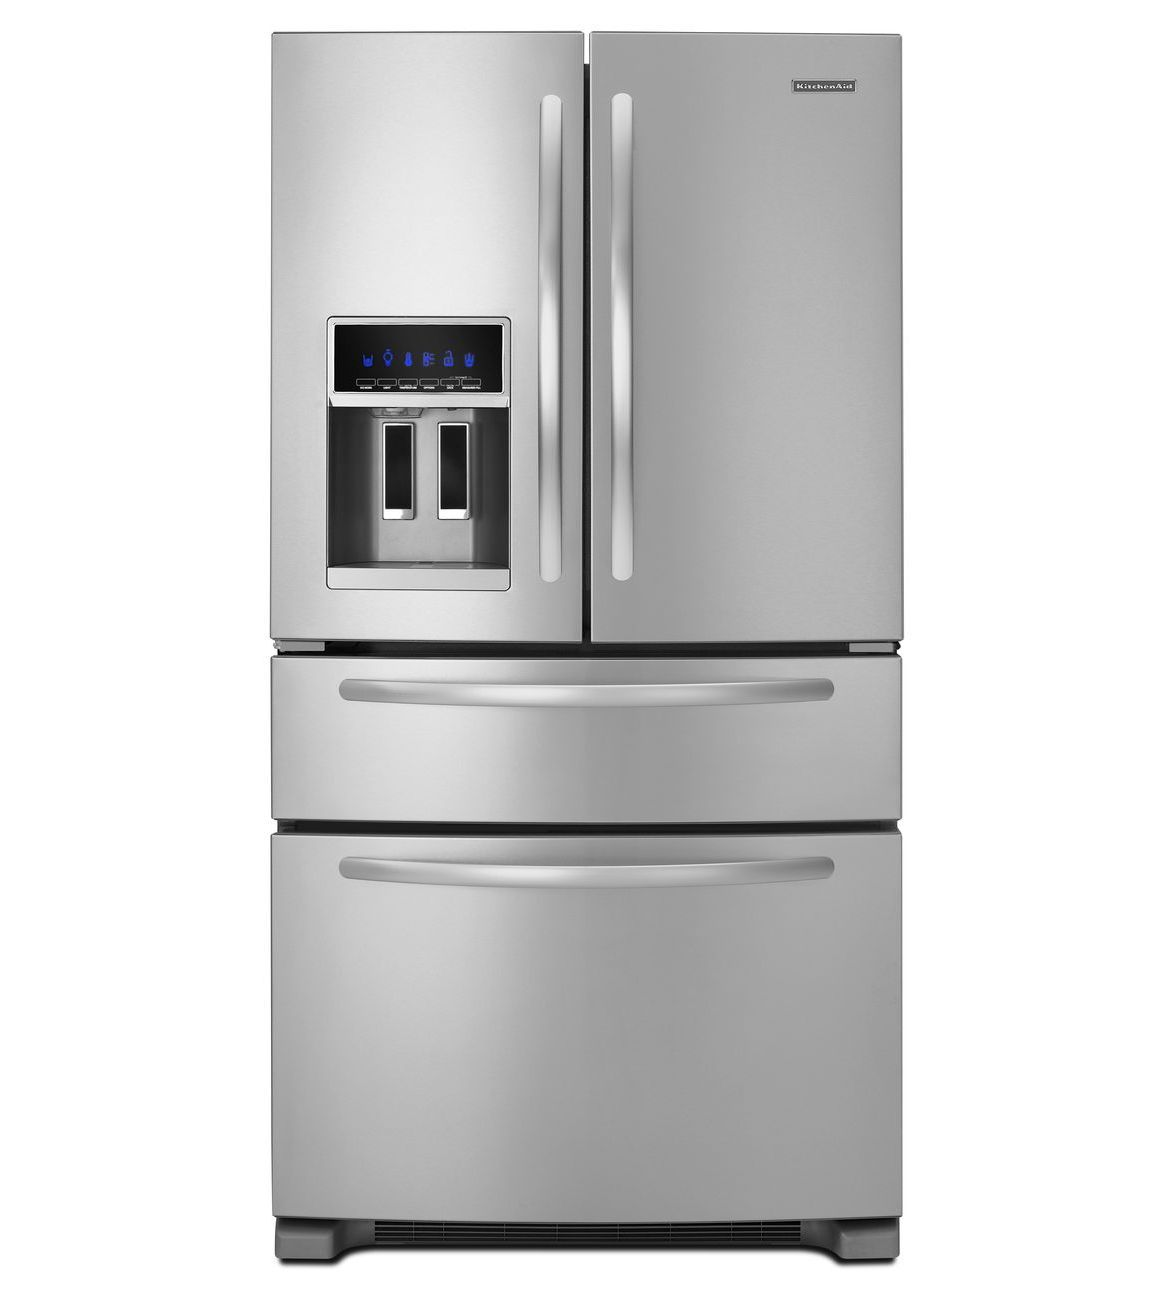 Learn About Features And Specifications For The KitchenAid 24 Cu. Standard  Depth Four Door French Door Refrigerator, Architect® Series II )